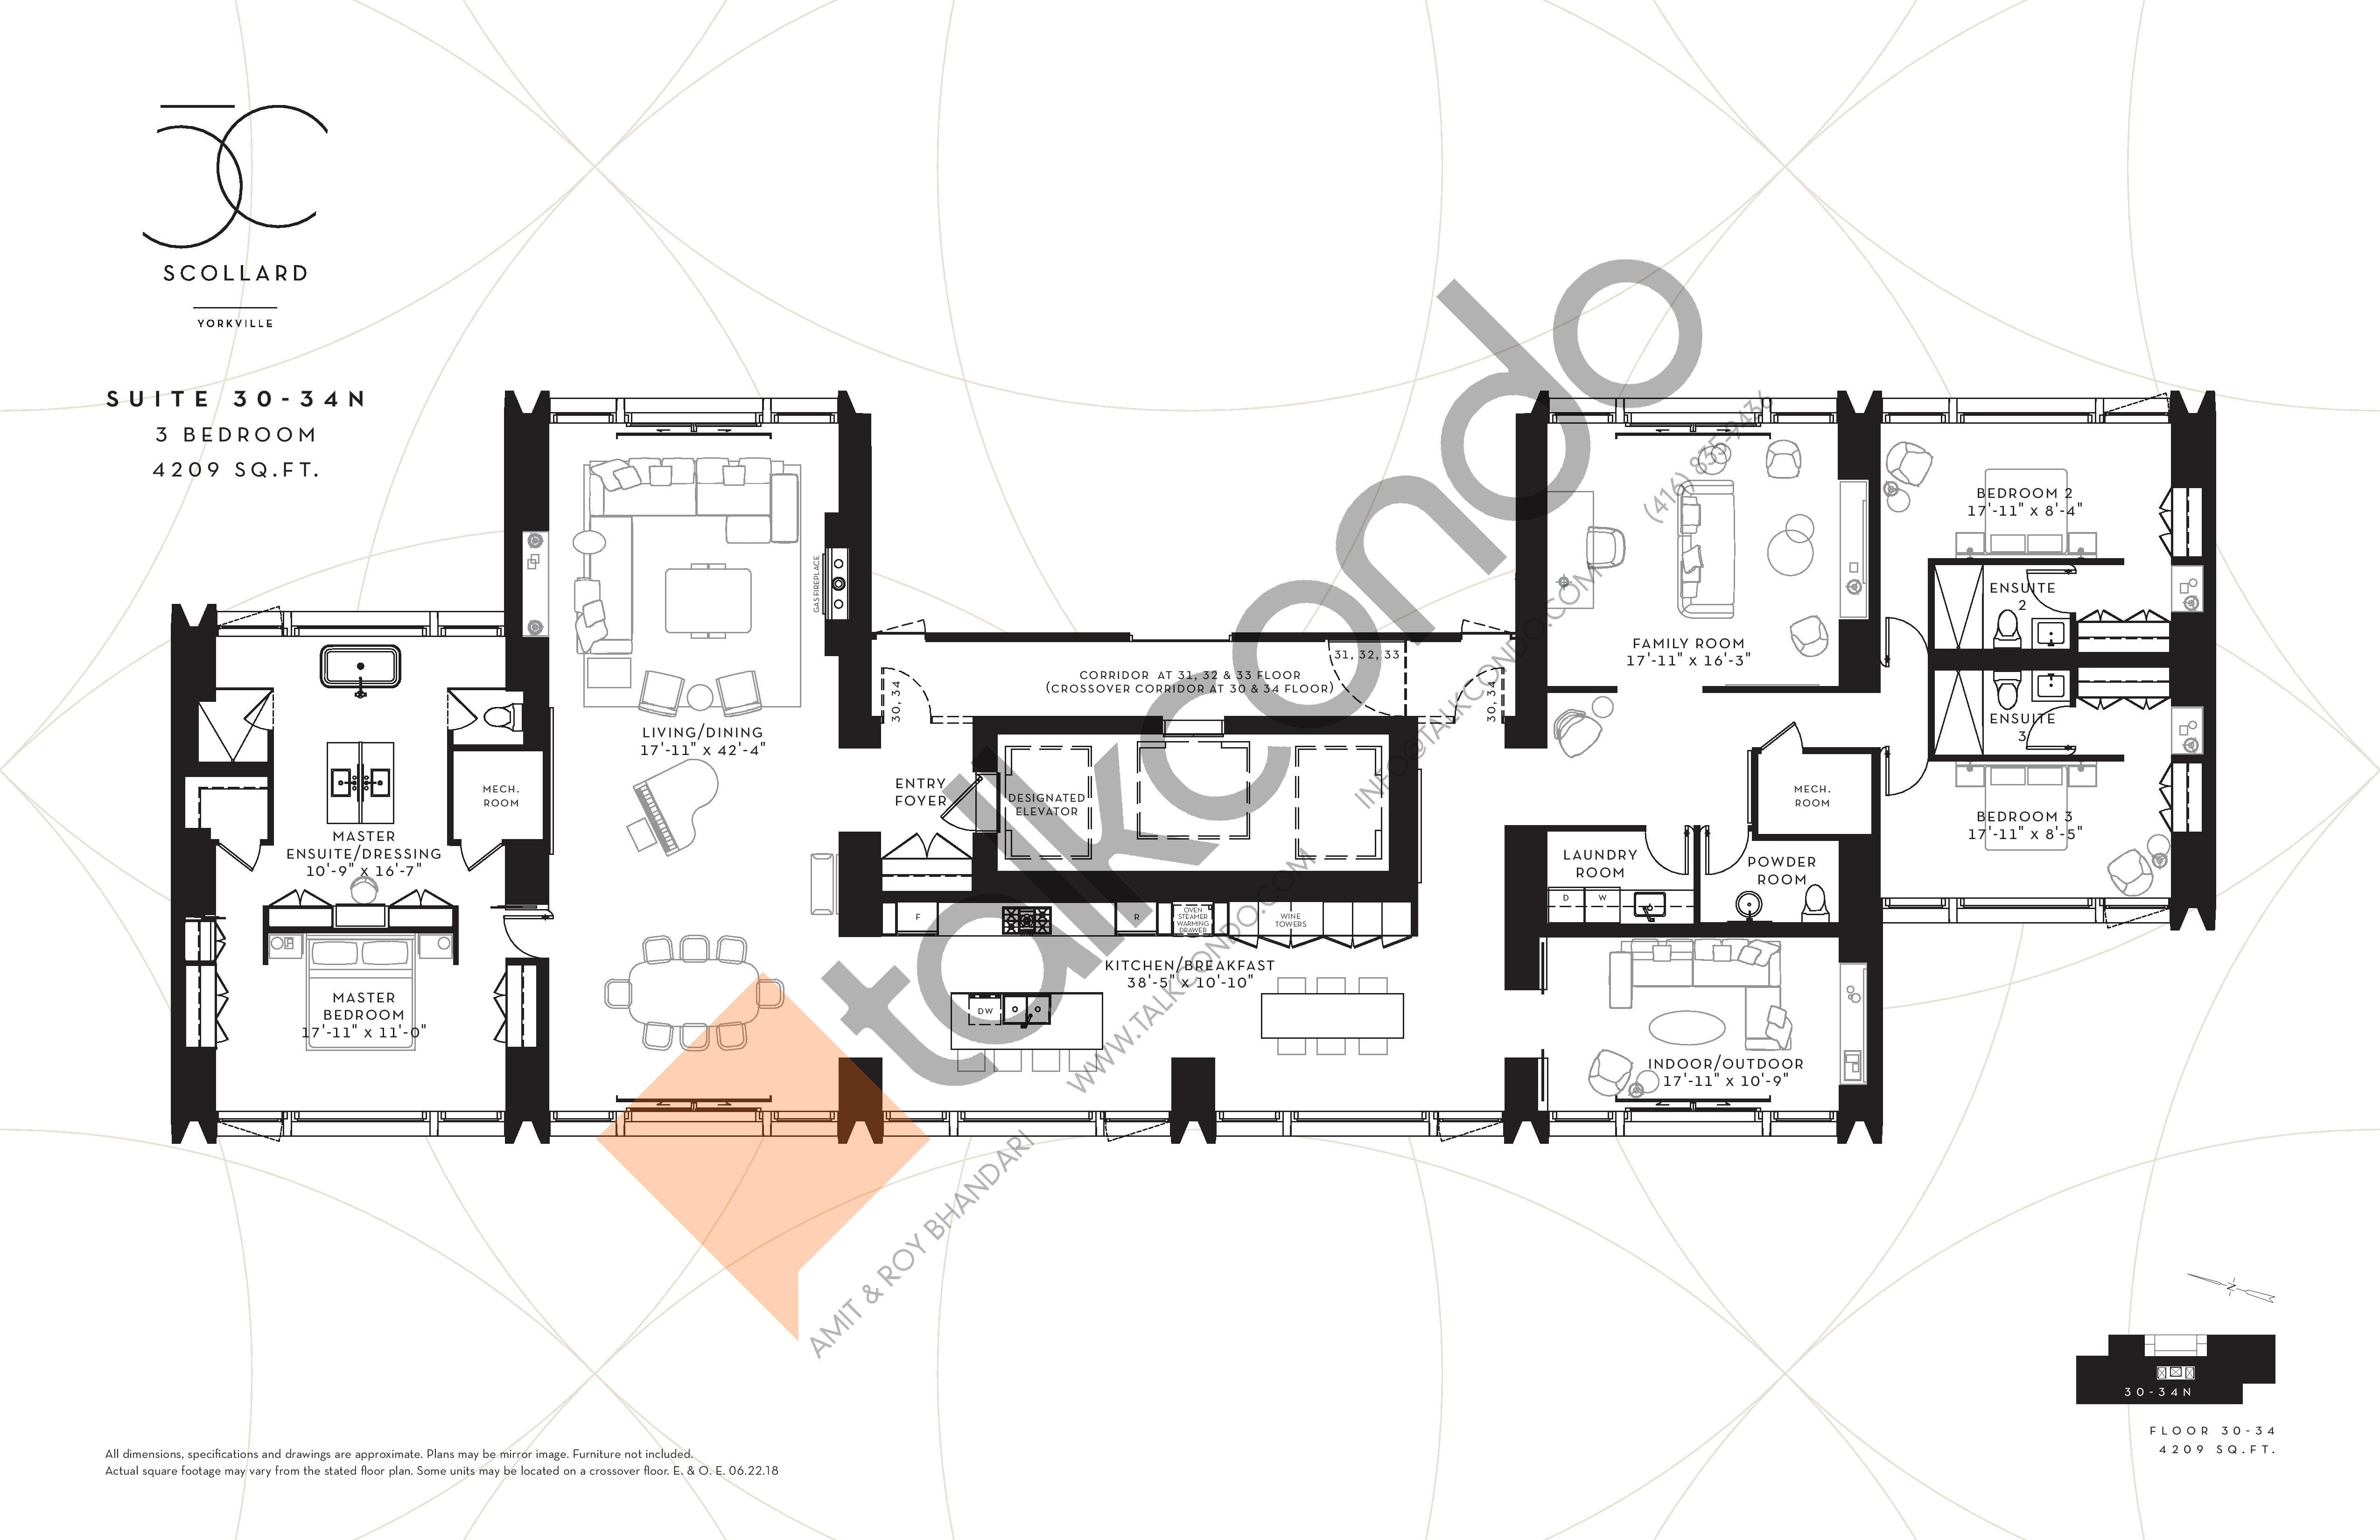 Suite 30-34N Floor Plan at Fifty Scollard Condos - 4209 sq.ft